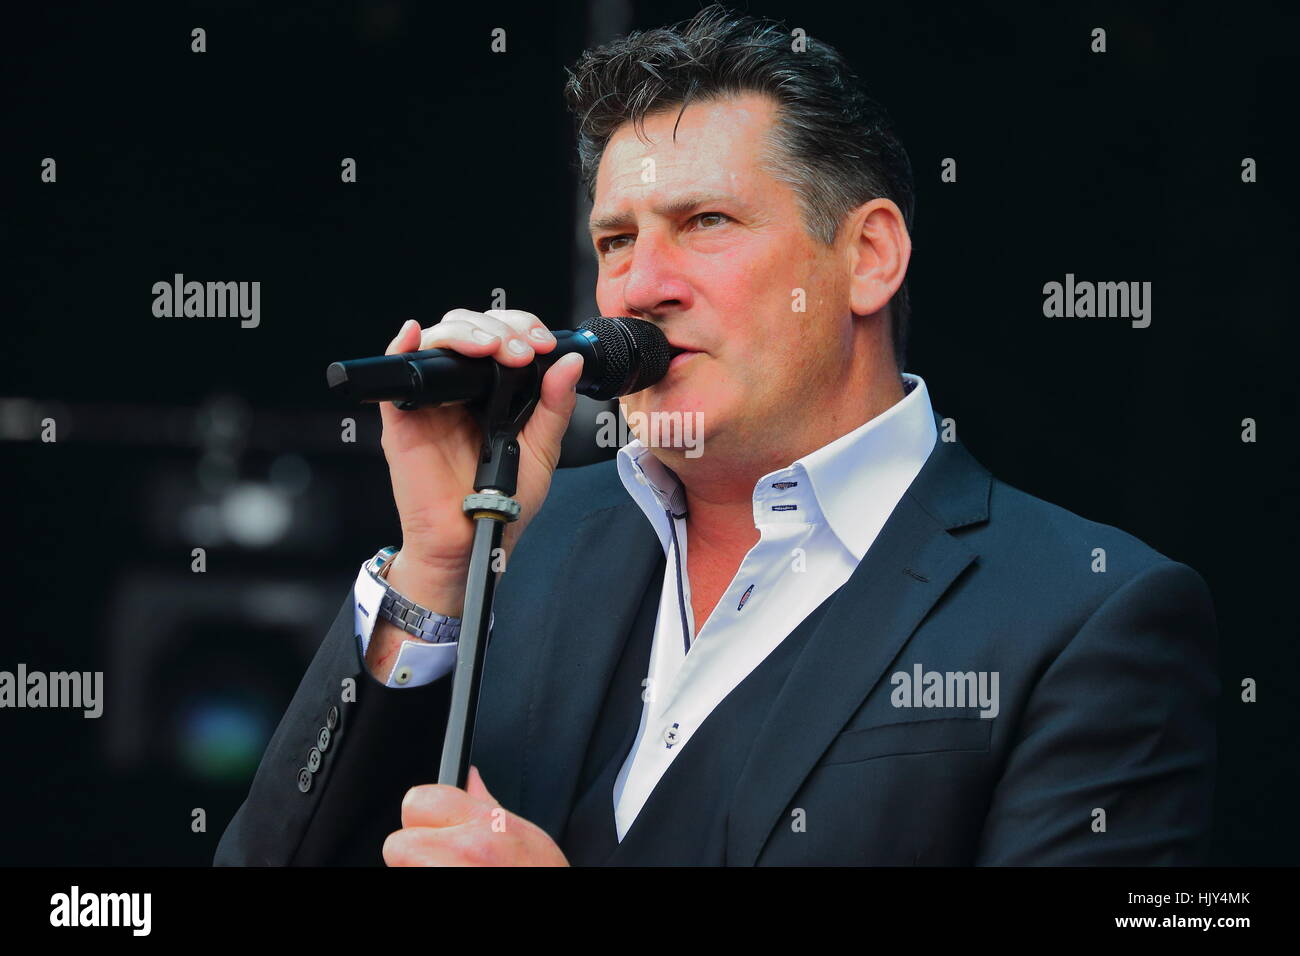 Tony Hadley at the Rewind South 80s Music Festival 2016 in Henley-on-Thames. Stock Photo